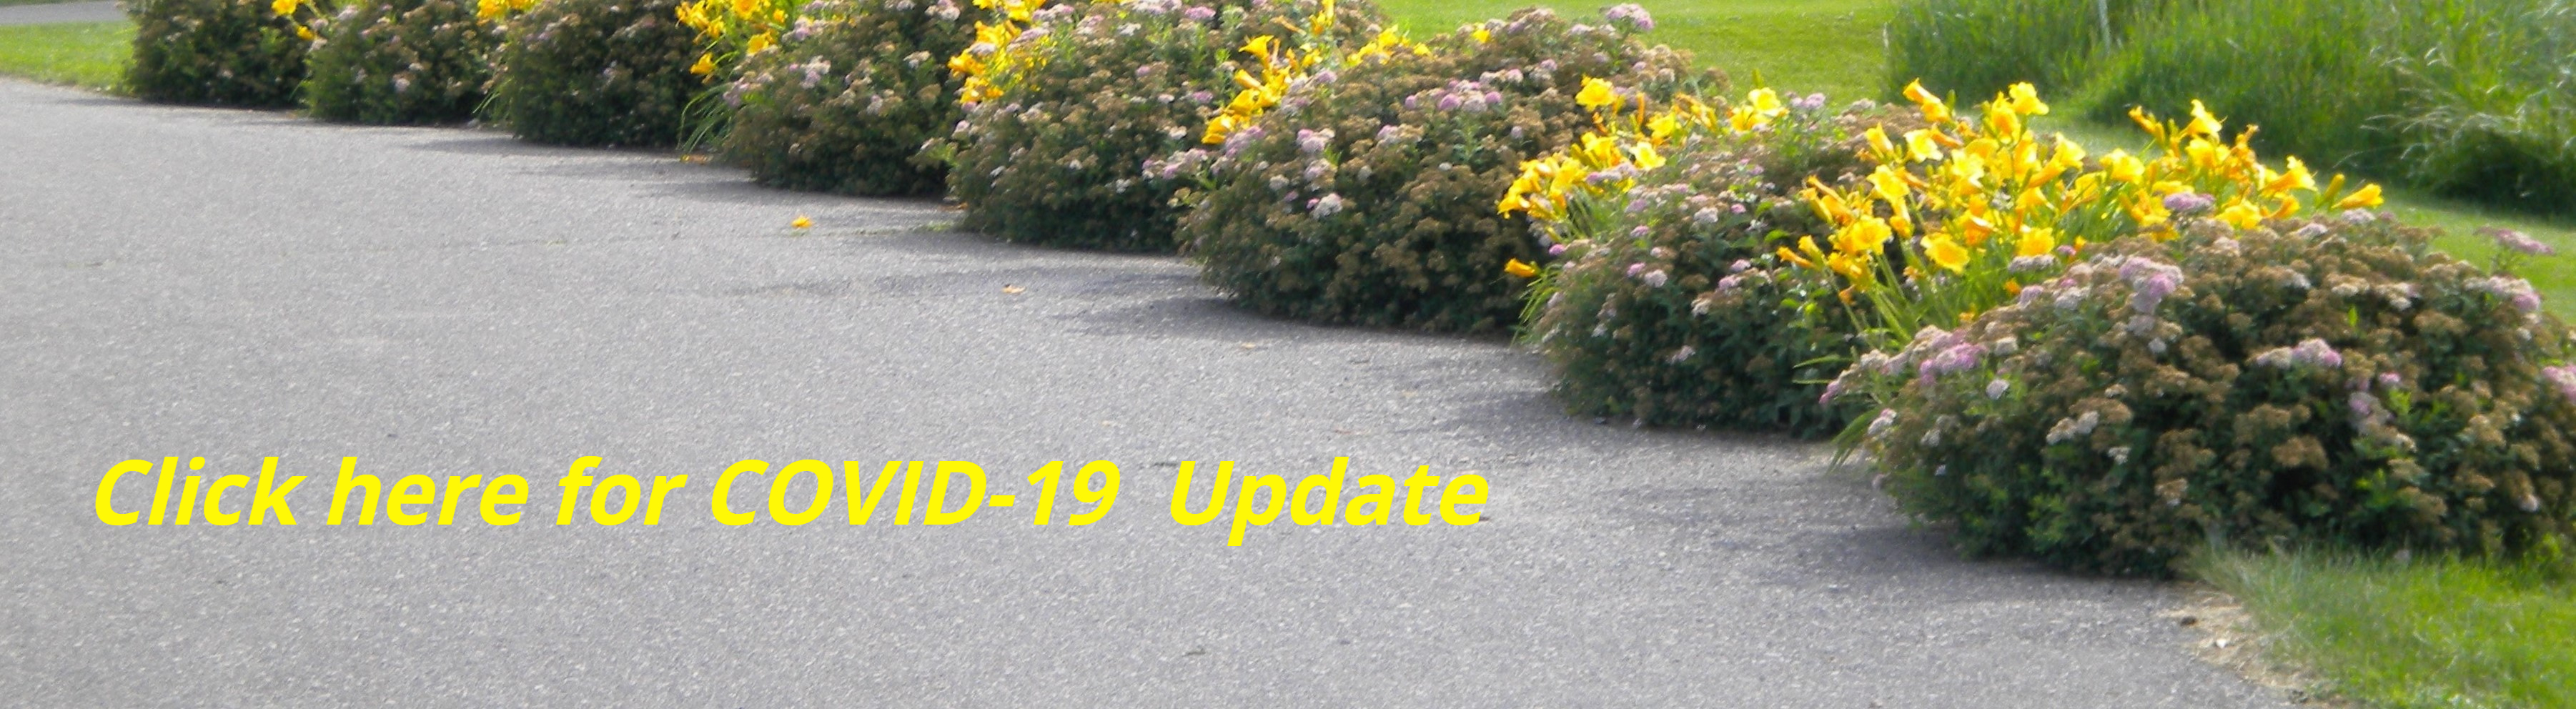 Click here for COVID-19 Update